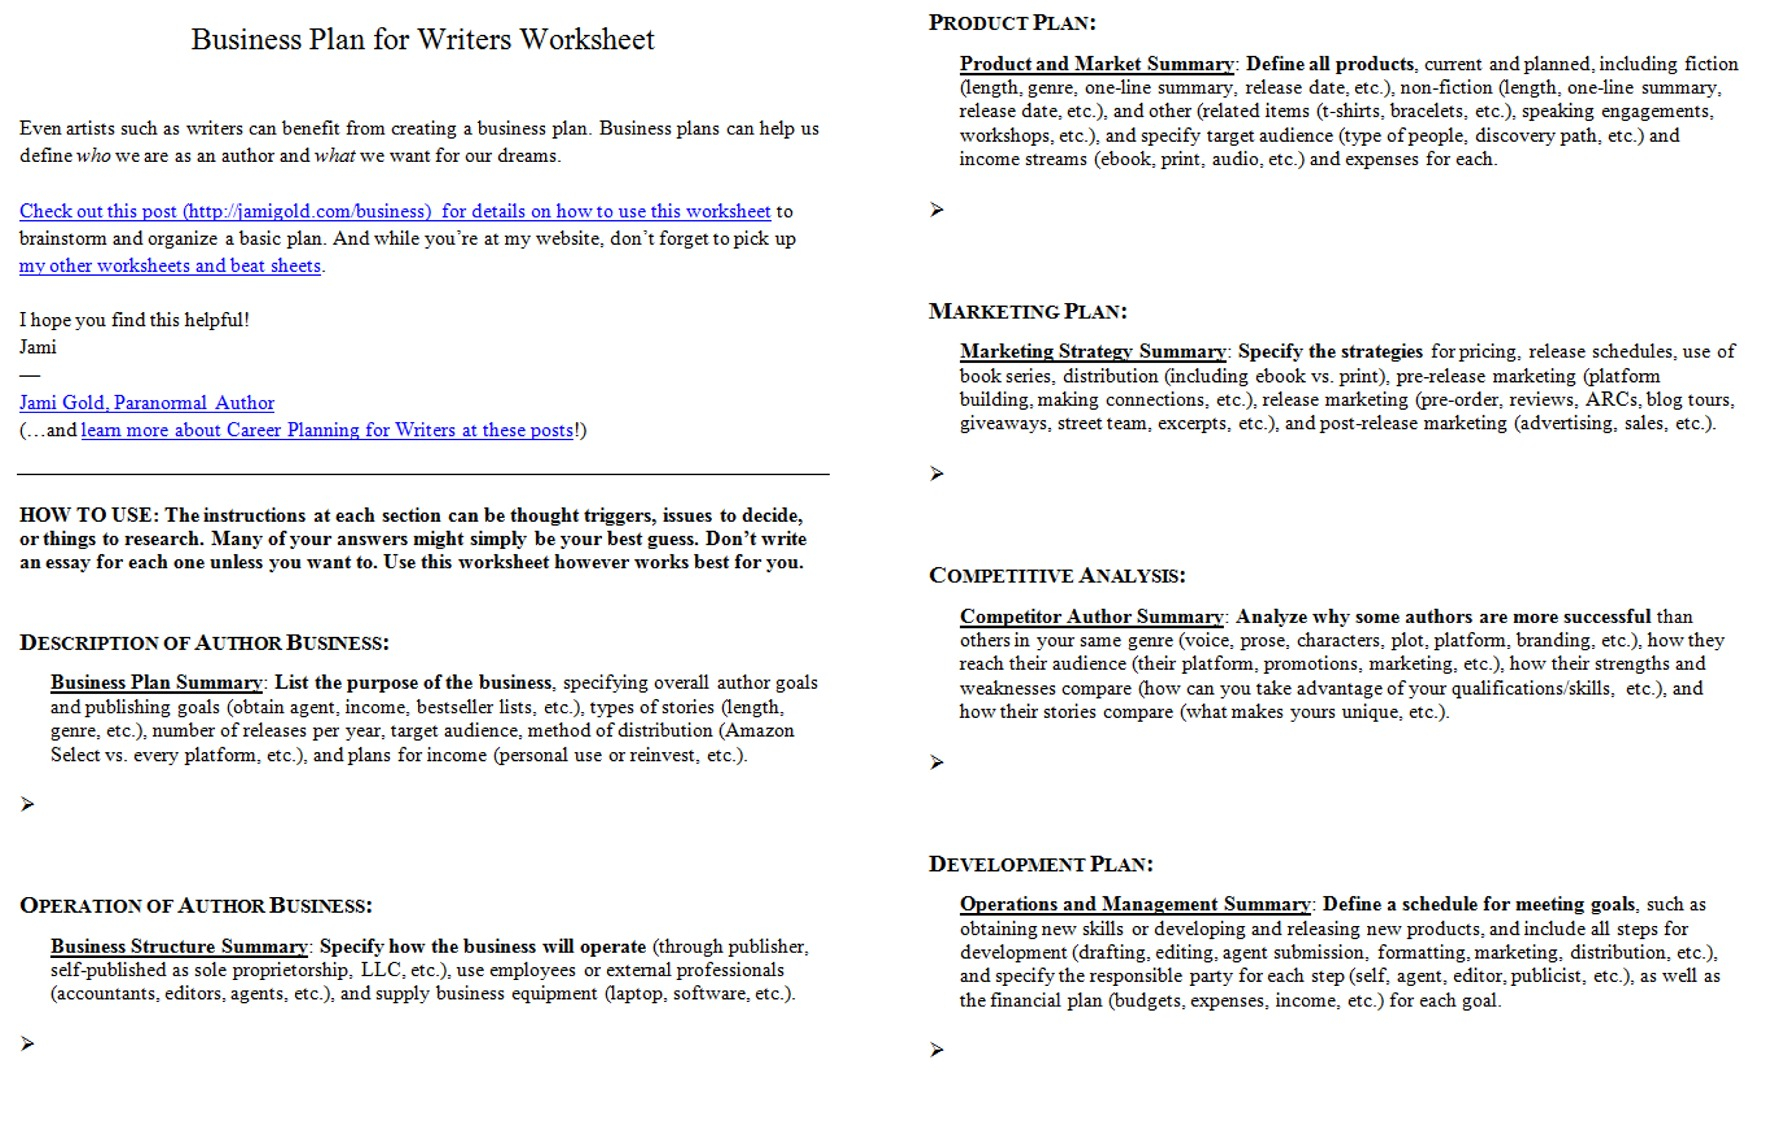 Weirdmailus  Personable Worksheets For Writers  Jami Gold Paranormal Author With Hot Screen Shot Of Both Pages Of The Business Plan For Writers Worksheet With Lovely Schedule Worksheets Also Worksheets On Word Problems In Addition Letter V Worksheets For Kindergarten And Spelling Ks Worksheets As Well As Soft Schools Division Worksheets Additionally Winter Coloring Worksheets From Jamigoldcom With Weirdmailus  Hot Worksheets For Writers  Jami Gold Paranormal Author With Lovely Screen Shot Of Both Pages Of The Business Plan For Writers Worksheet And Personable Schedule Worksheets Also Worksheets On Word Problems In Addition Letter V Worksheets For Kindergarten From Jamigoldcom